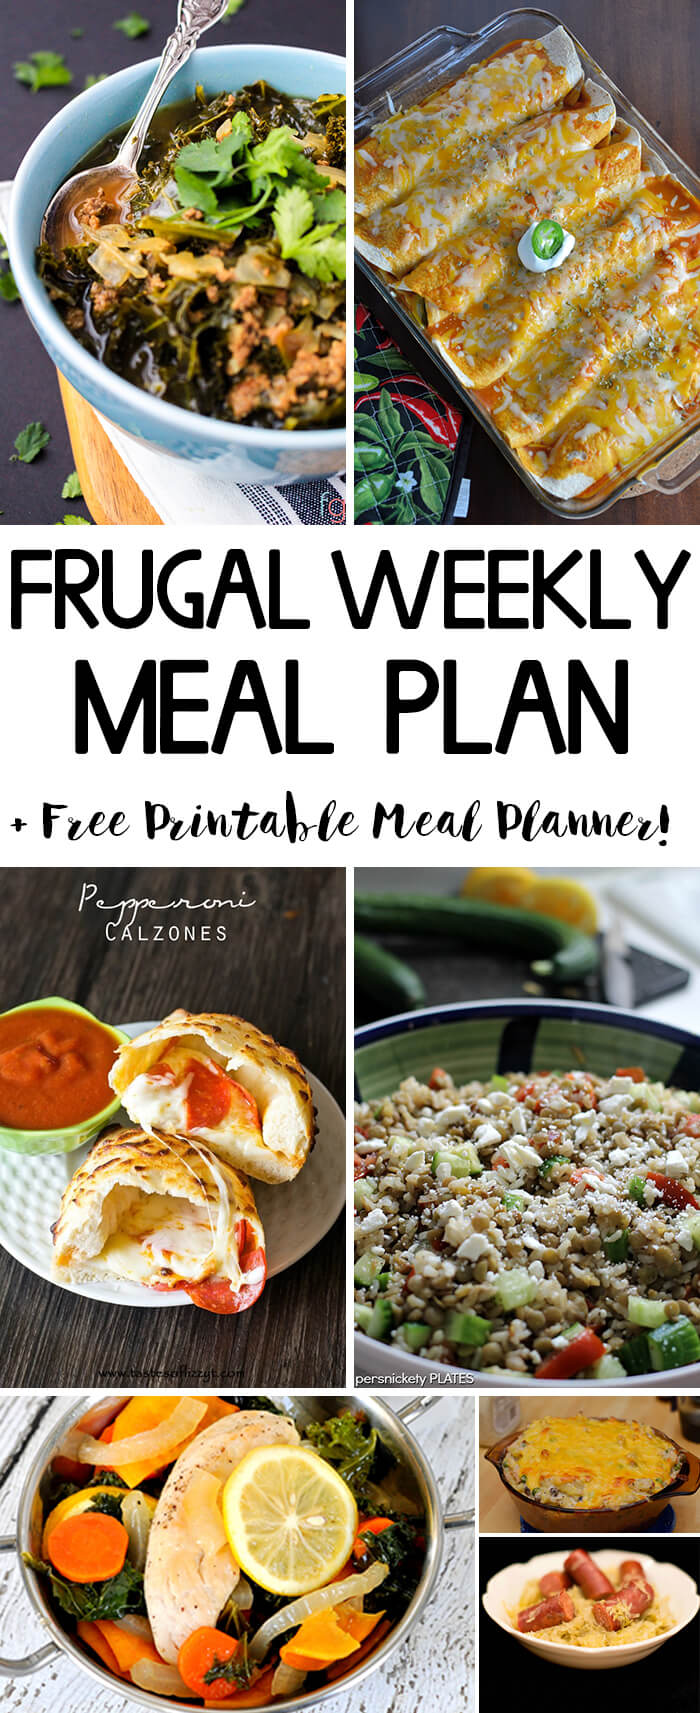 Frugal Weekly Meal Plan - Tasty and budget friendly dinner ideas to spice up your weeknight dinners.